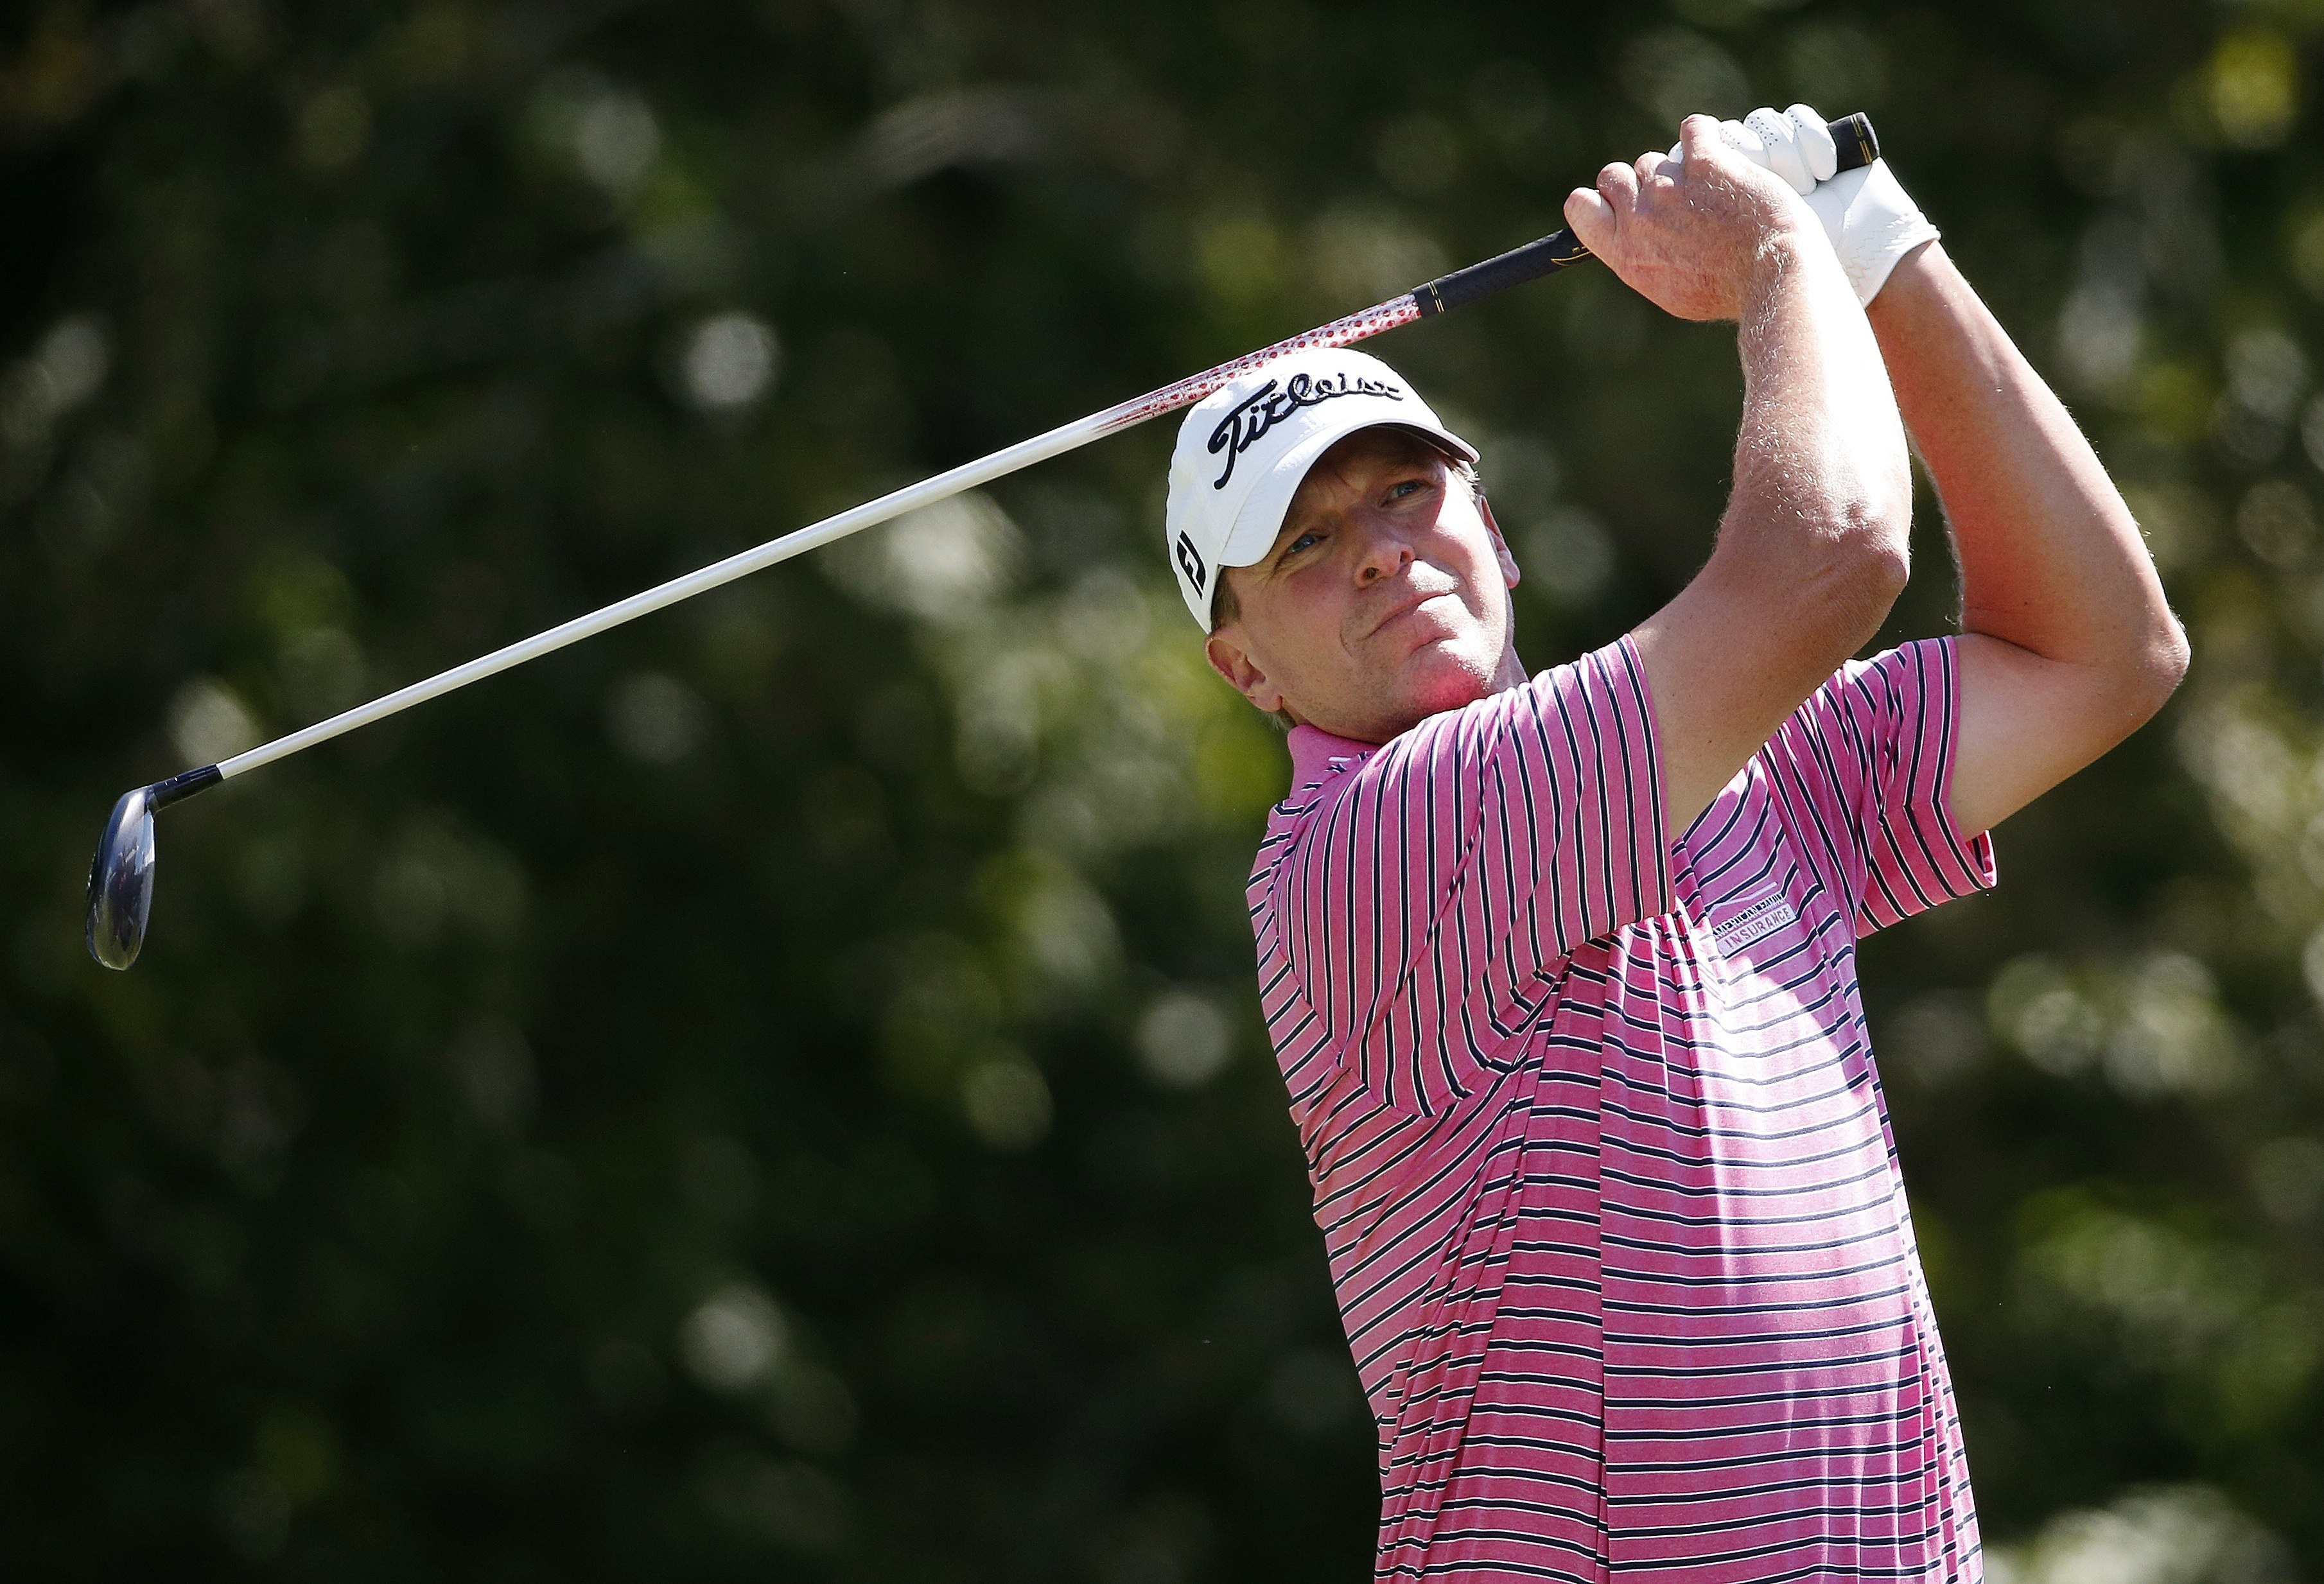 FILE - In this Sept. 2, 2016, file photo, Steve Stricker tees off on the 17th hole during the first round of the Deutsche Bank Championship golf tournament in Norton, Mass. Stricker always thought it was a long shot, and he recently was reminded that the